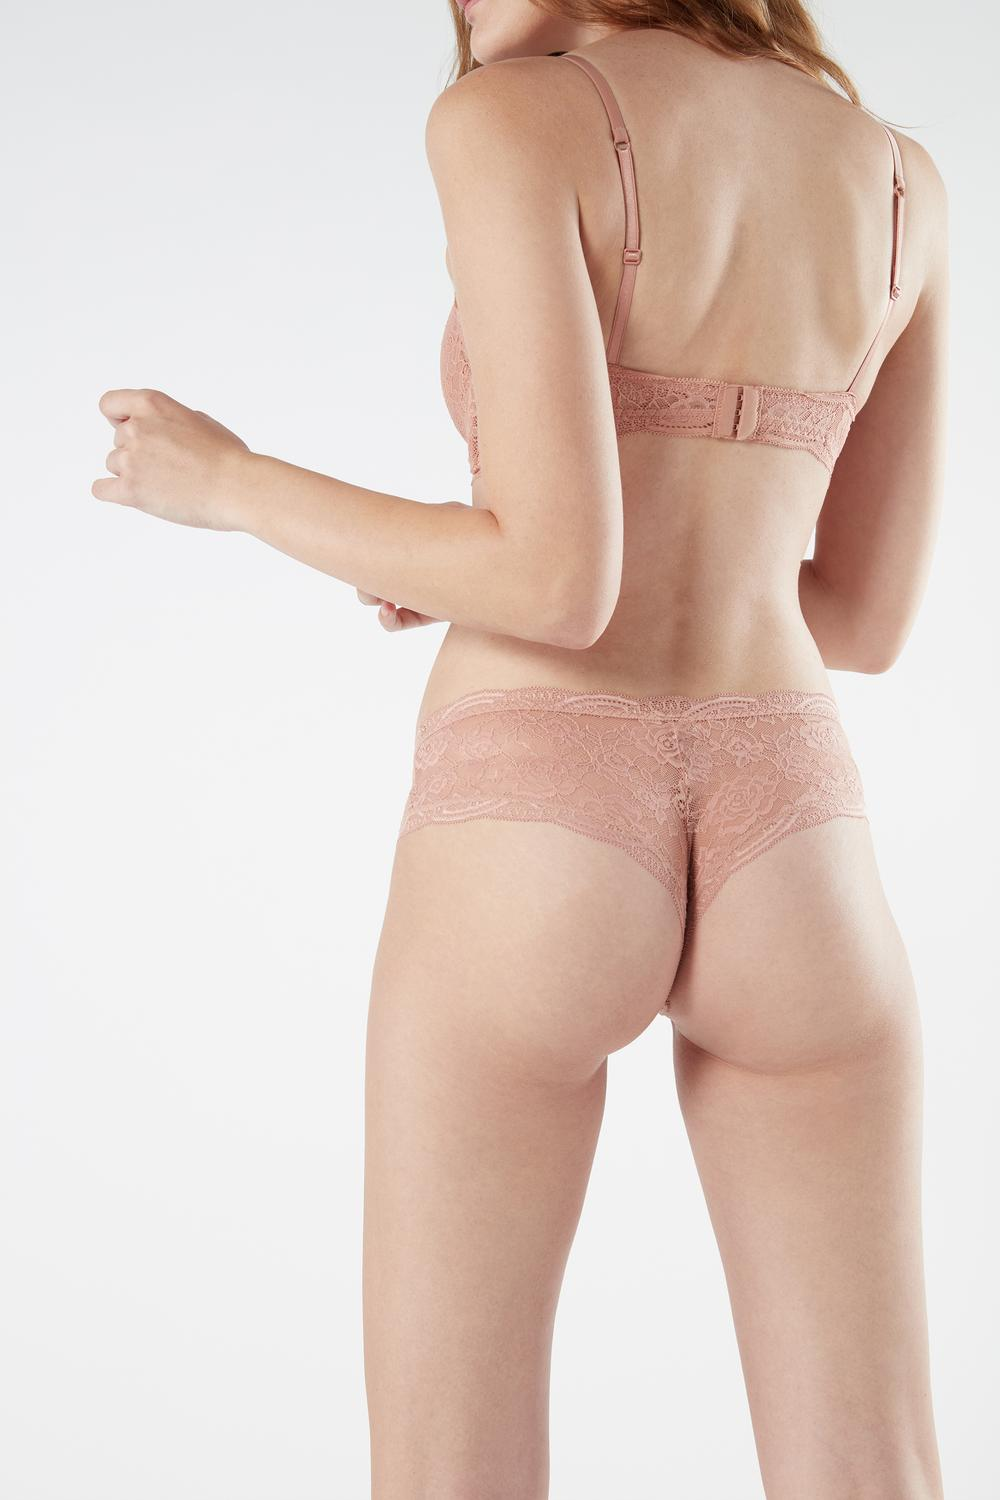 Lace French Knickers